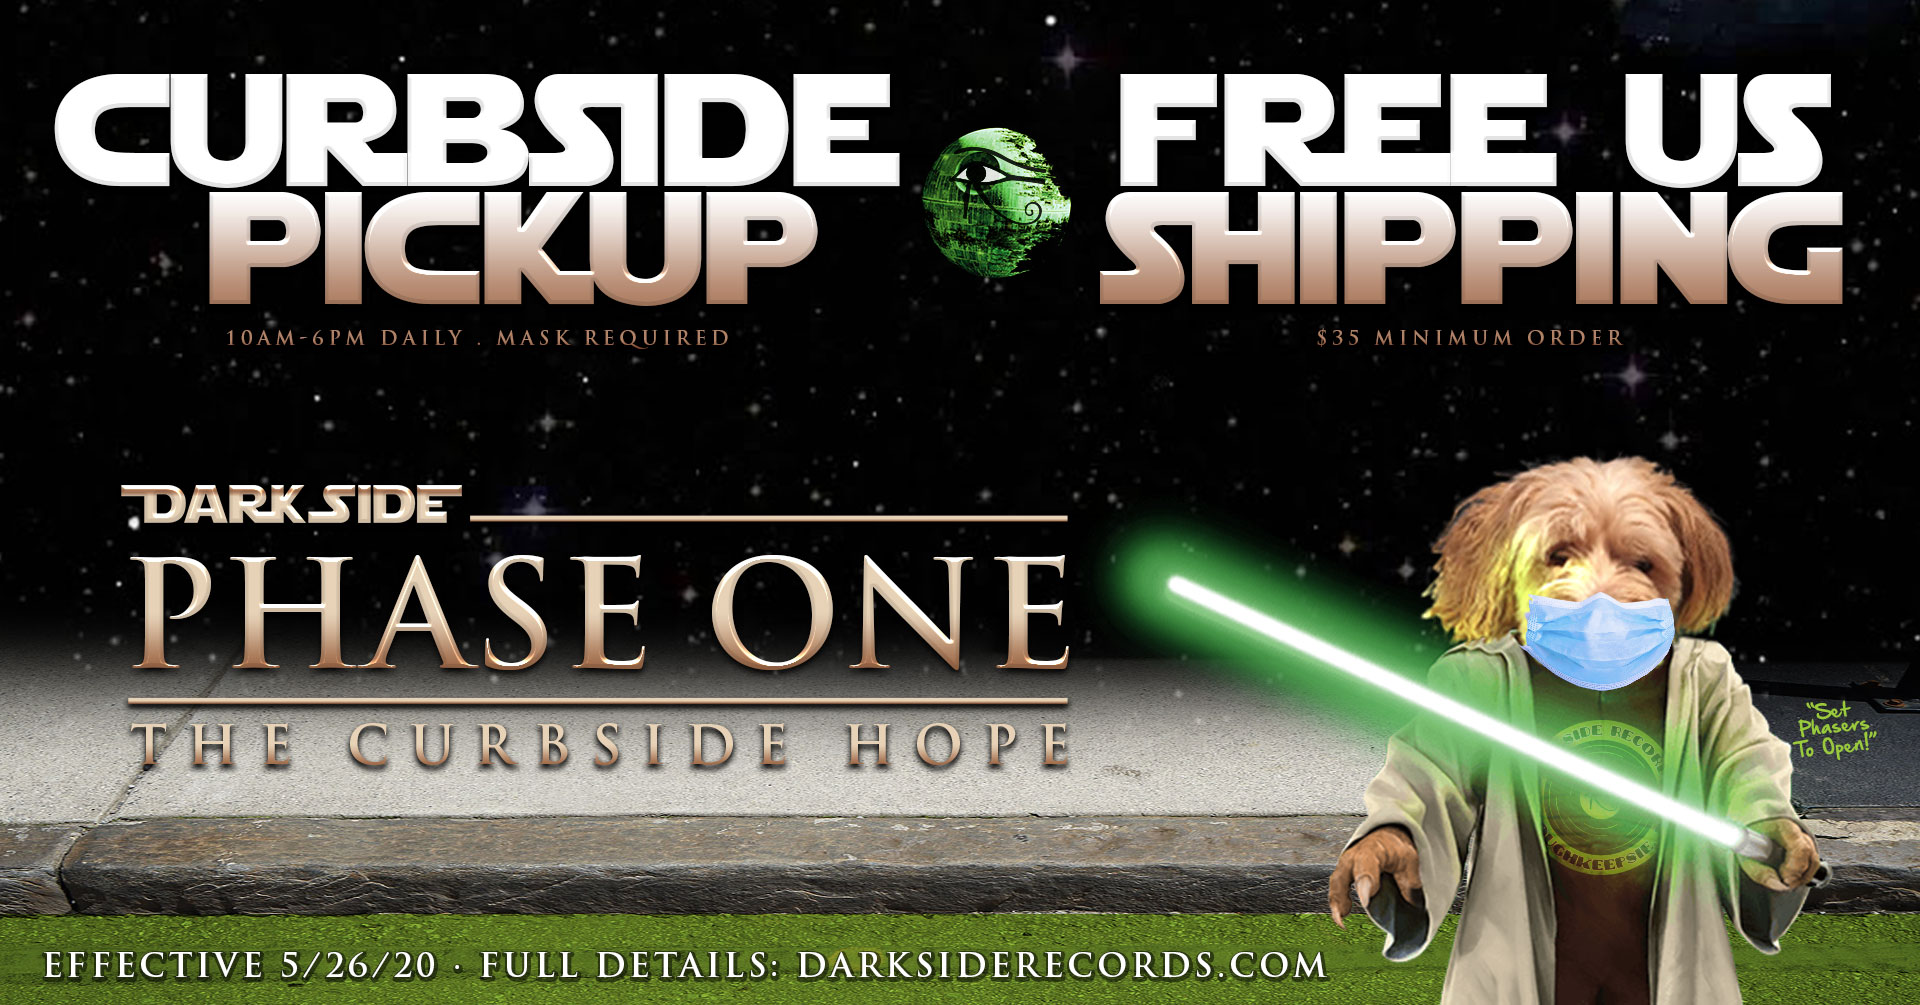 curbside pickup available at darkside records